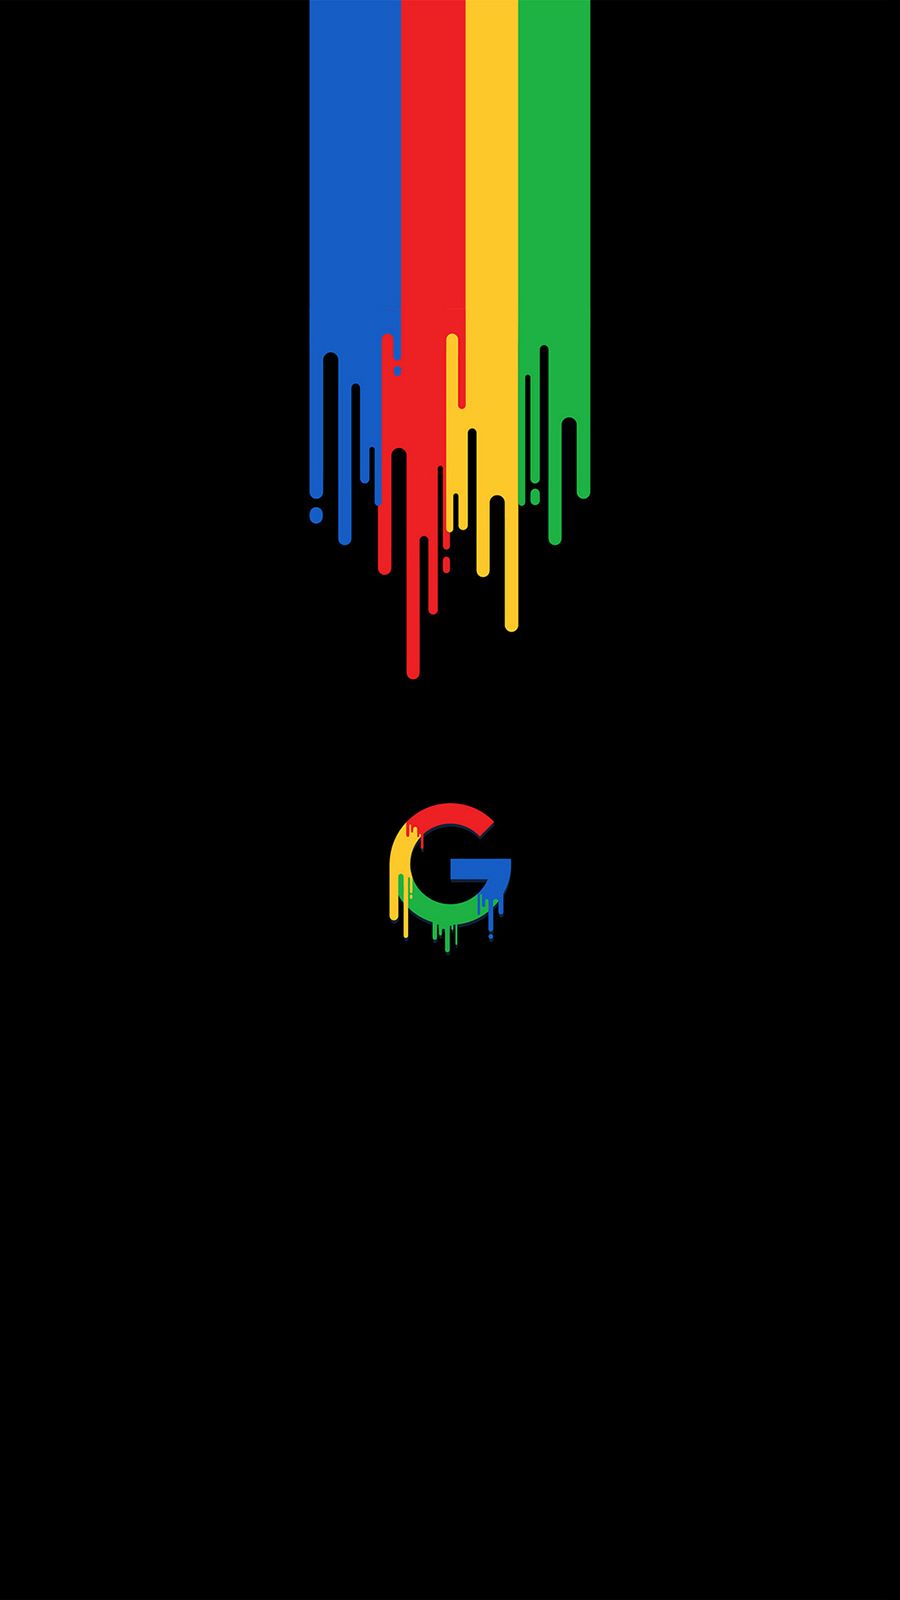 Google Background Wallpapers Free Download